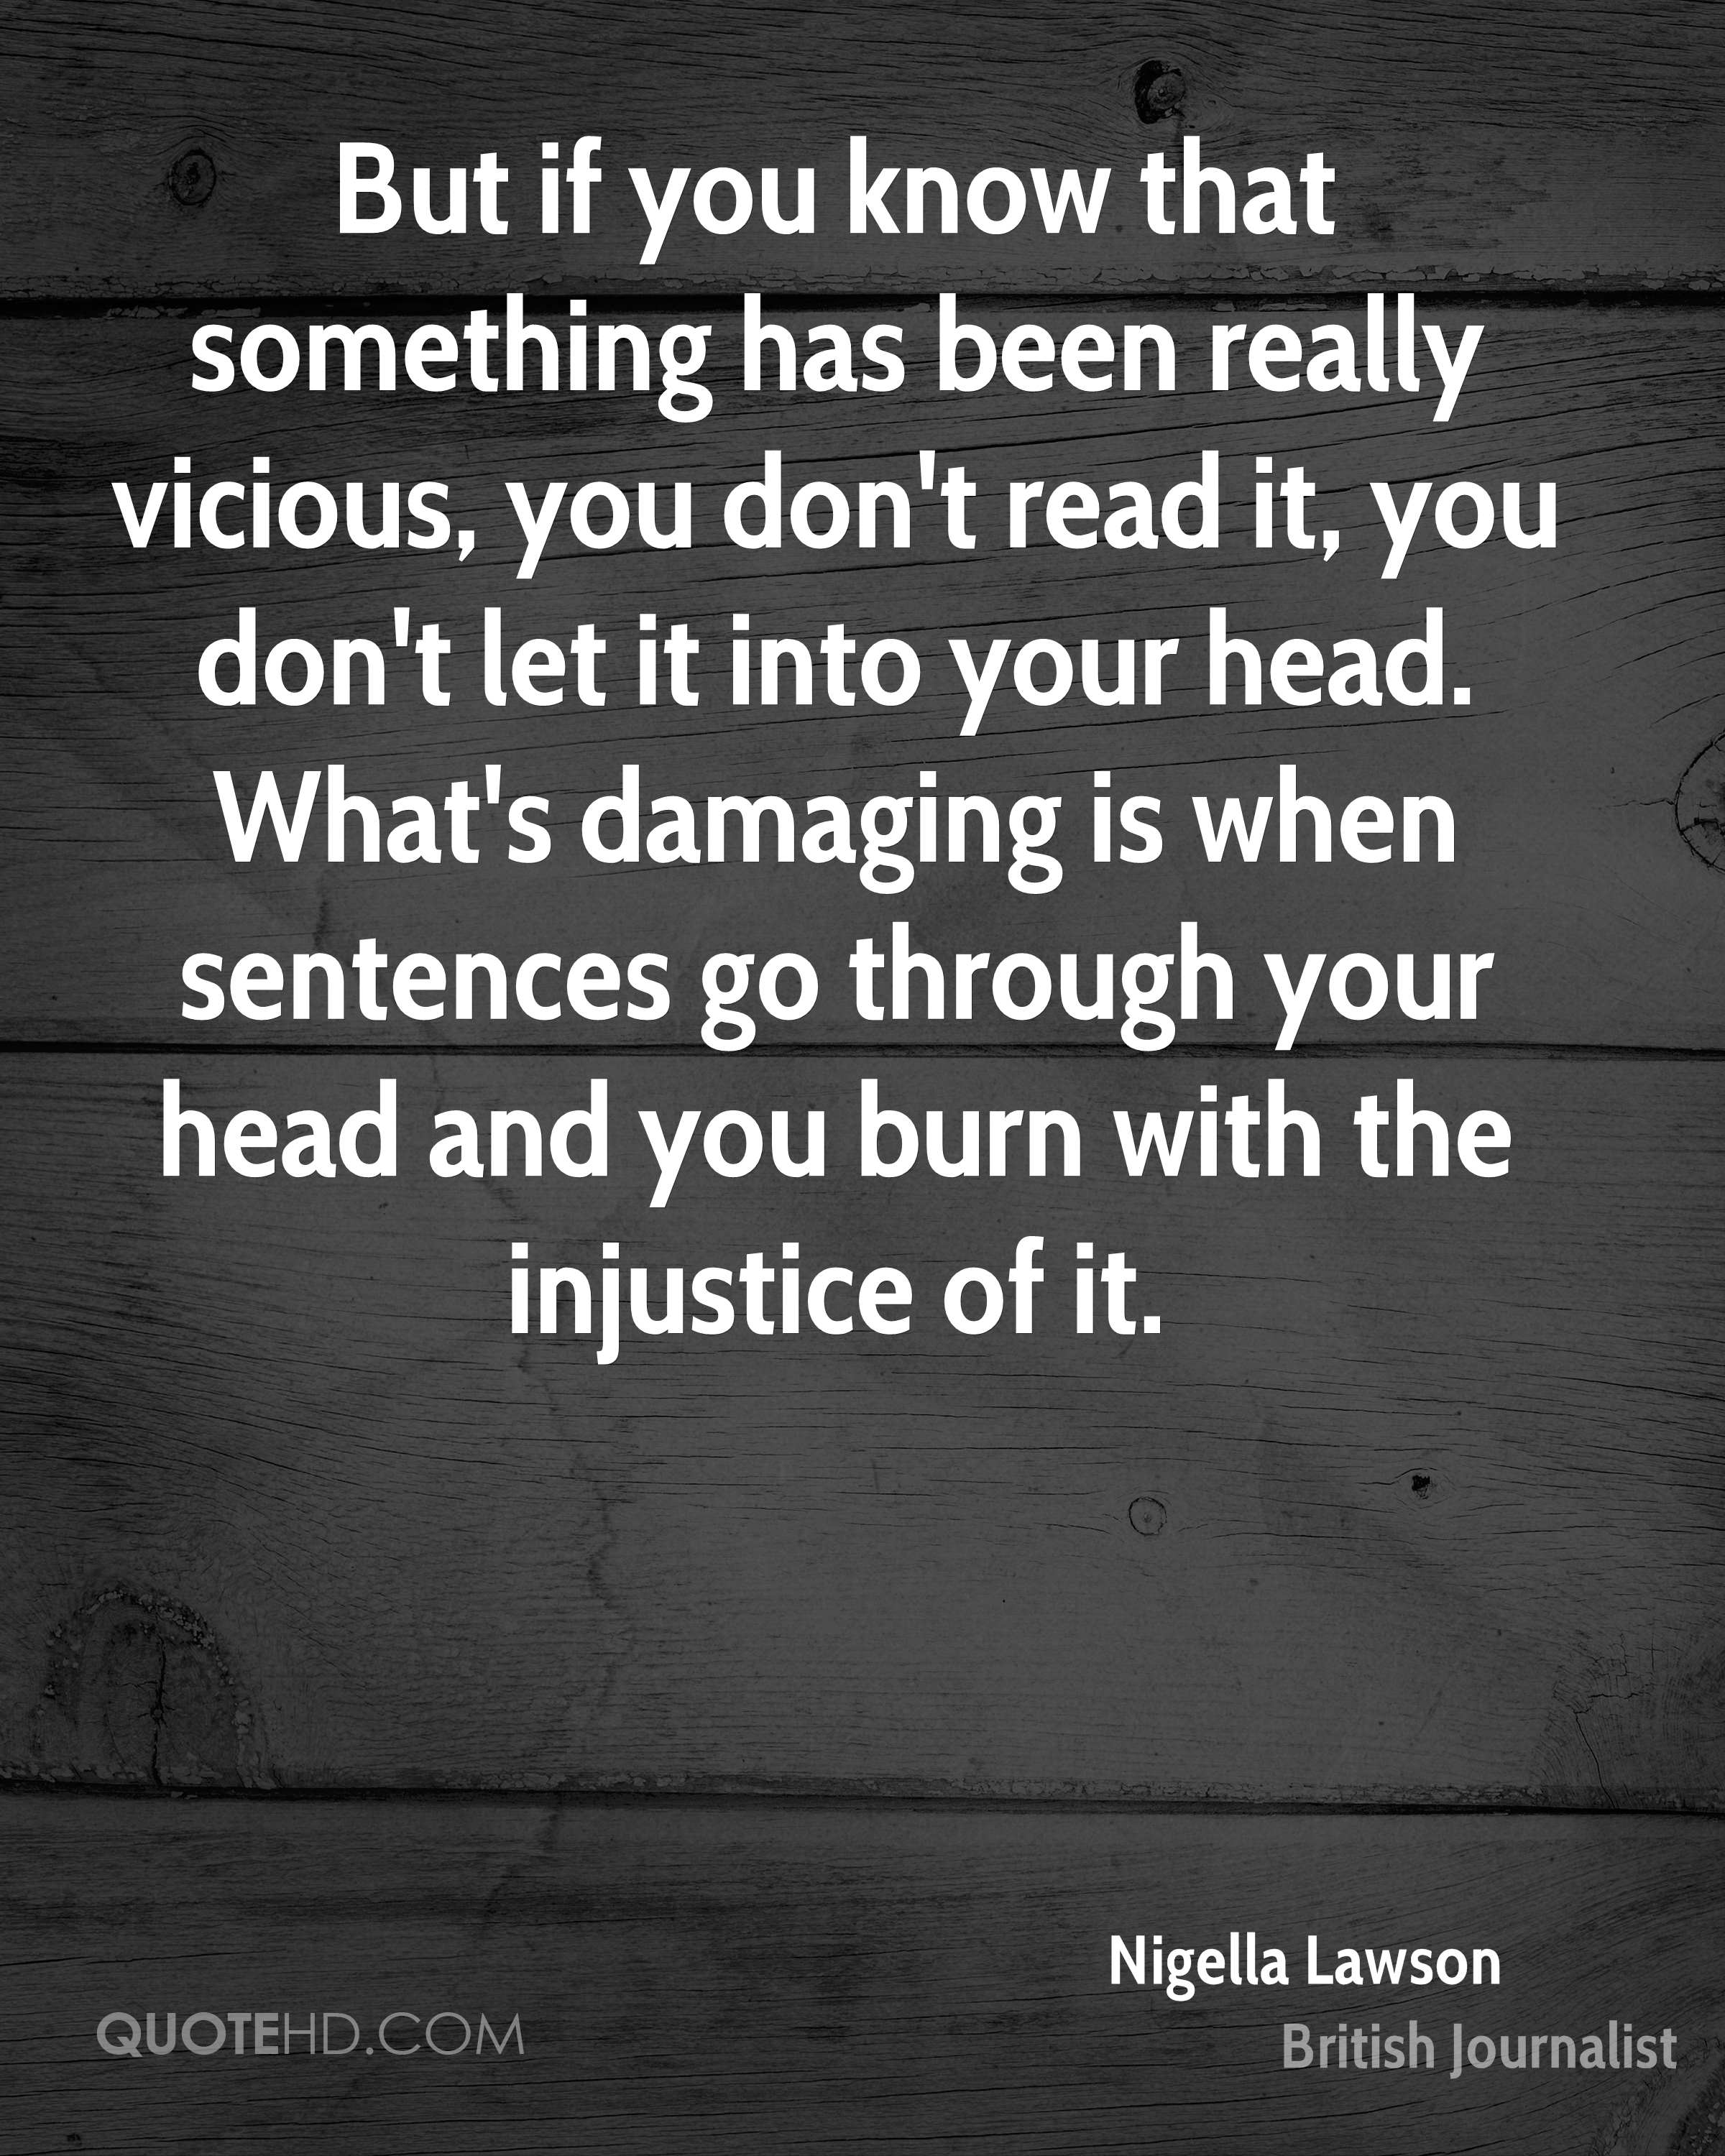 But if you know that something has been really vicious, you don't read it, you don't let it into your head. What's damaging is when sentences go through your head and you burn with the injustice of it.